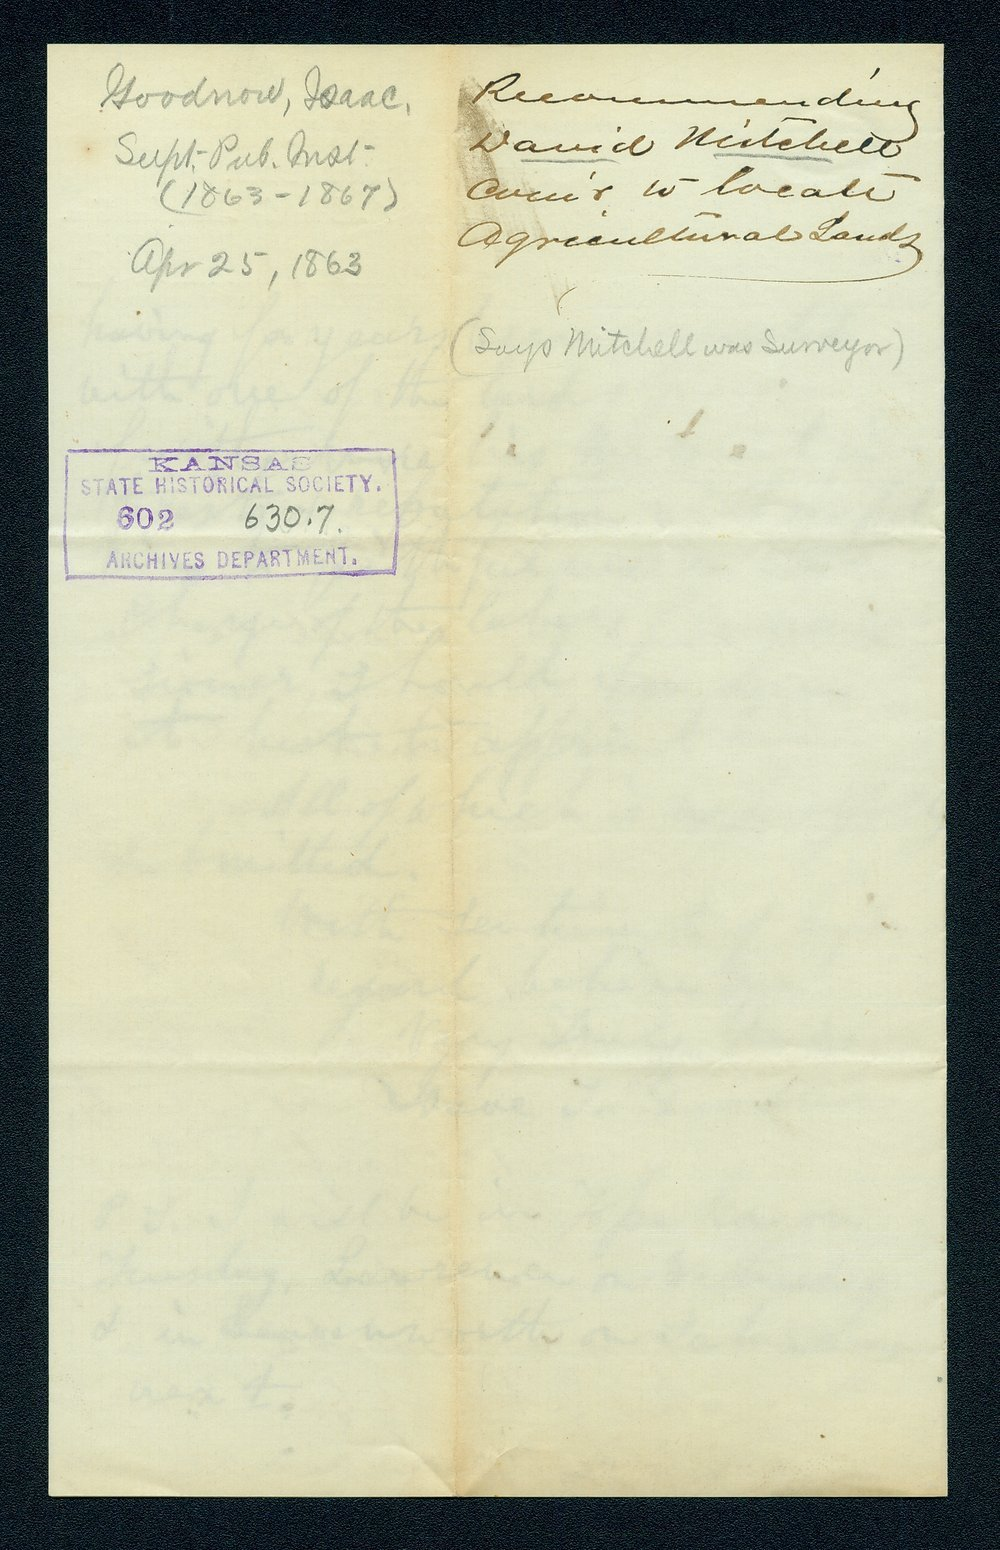 Governor Thomas Carney college and university lands, 1863, correspondence - 6